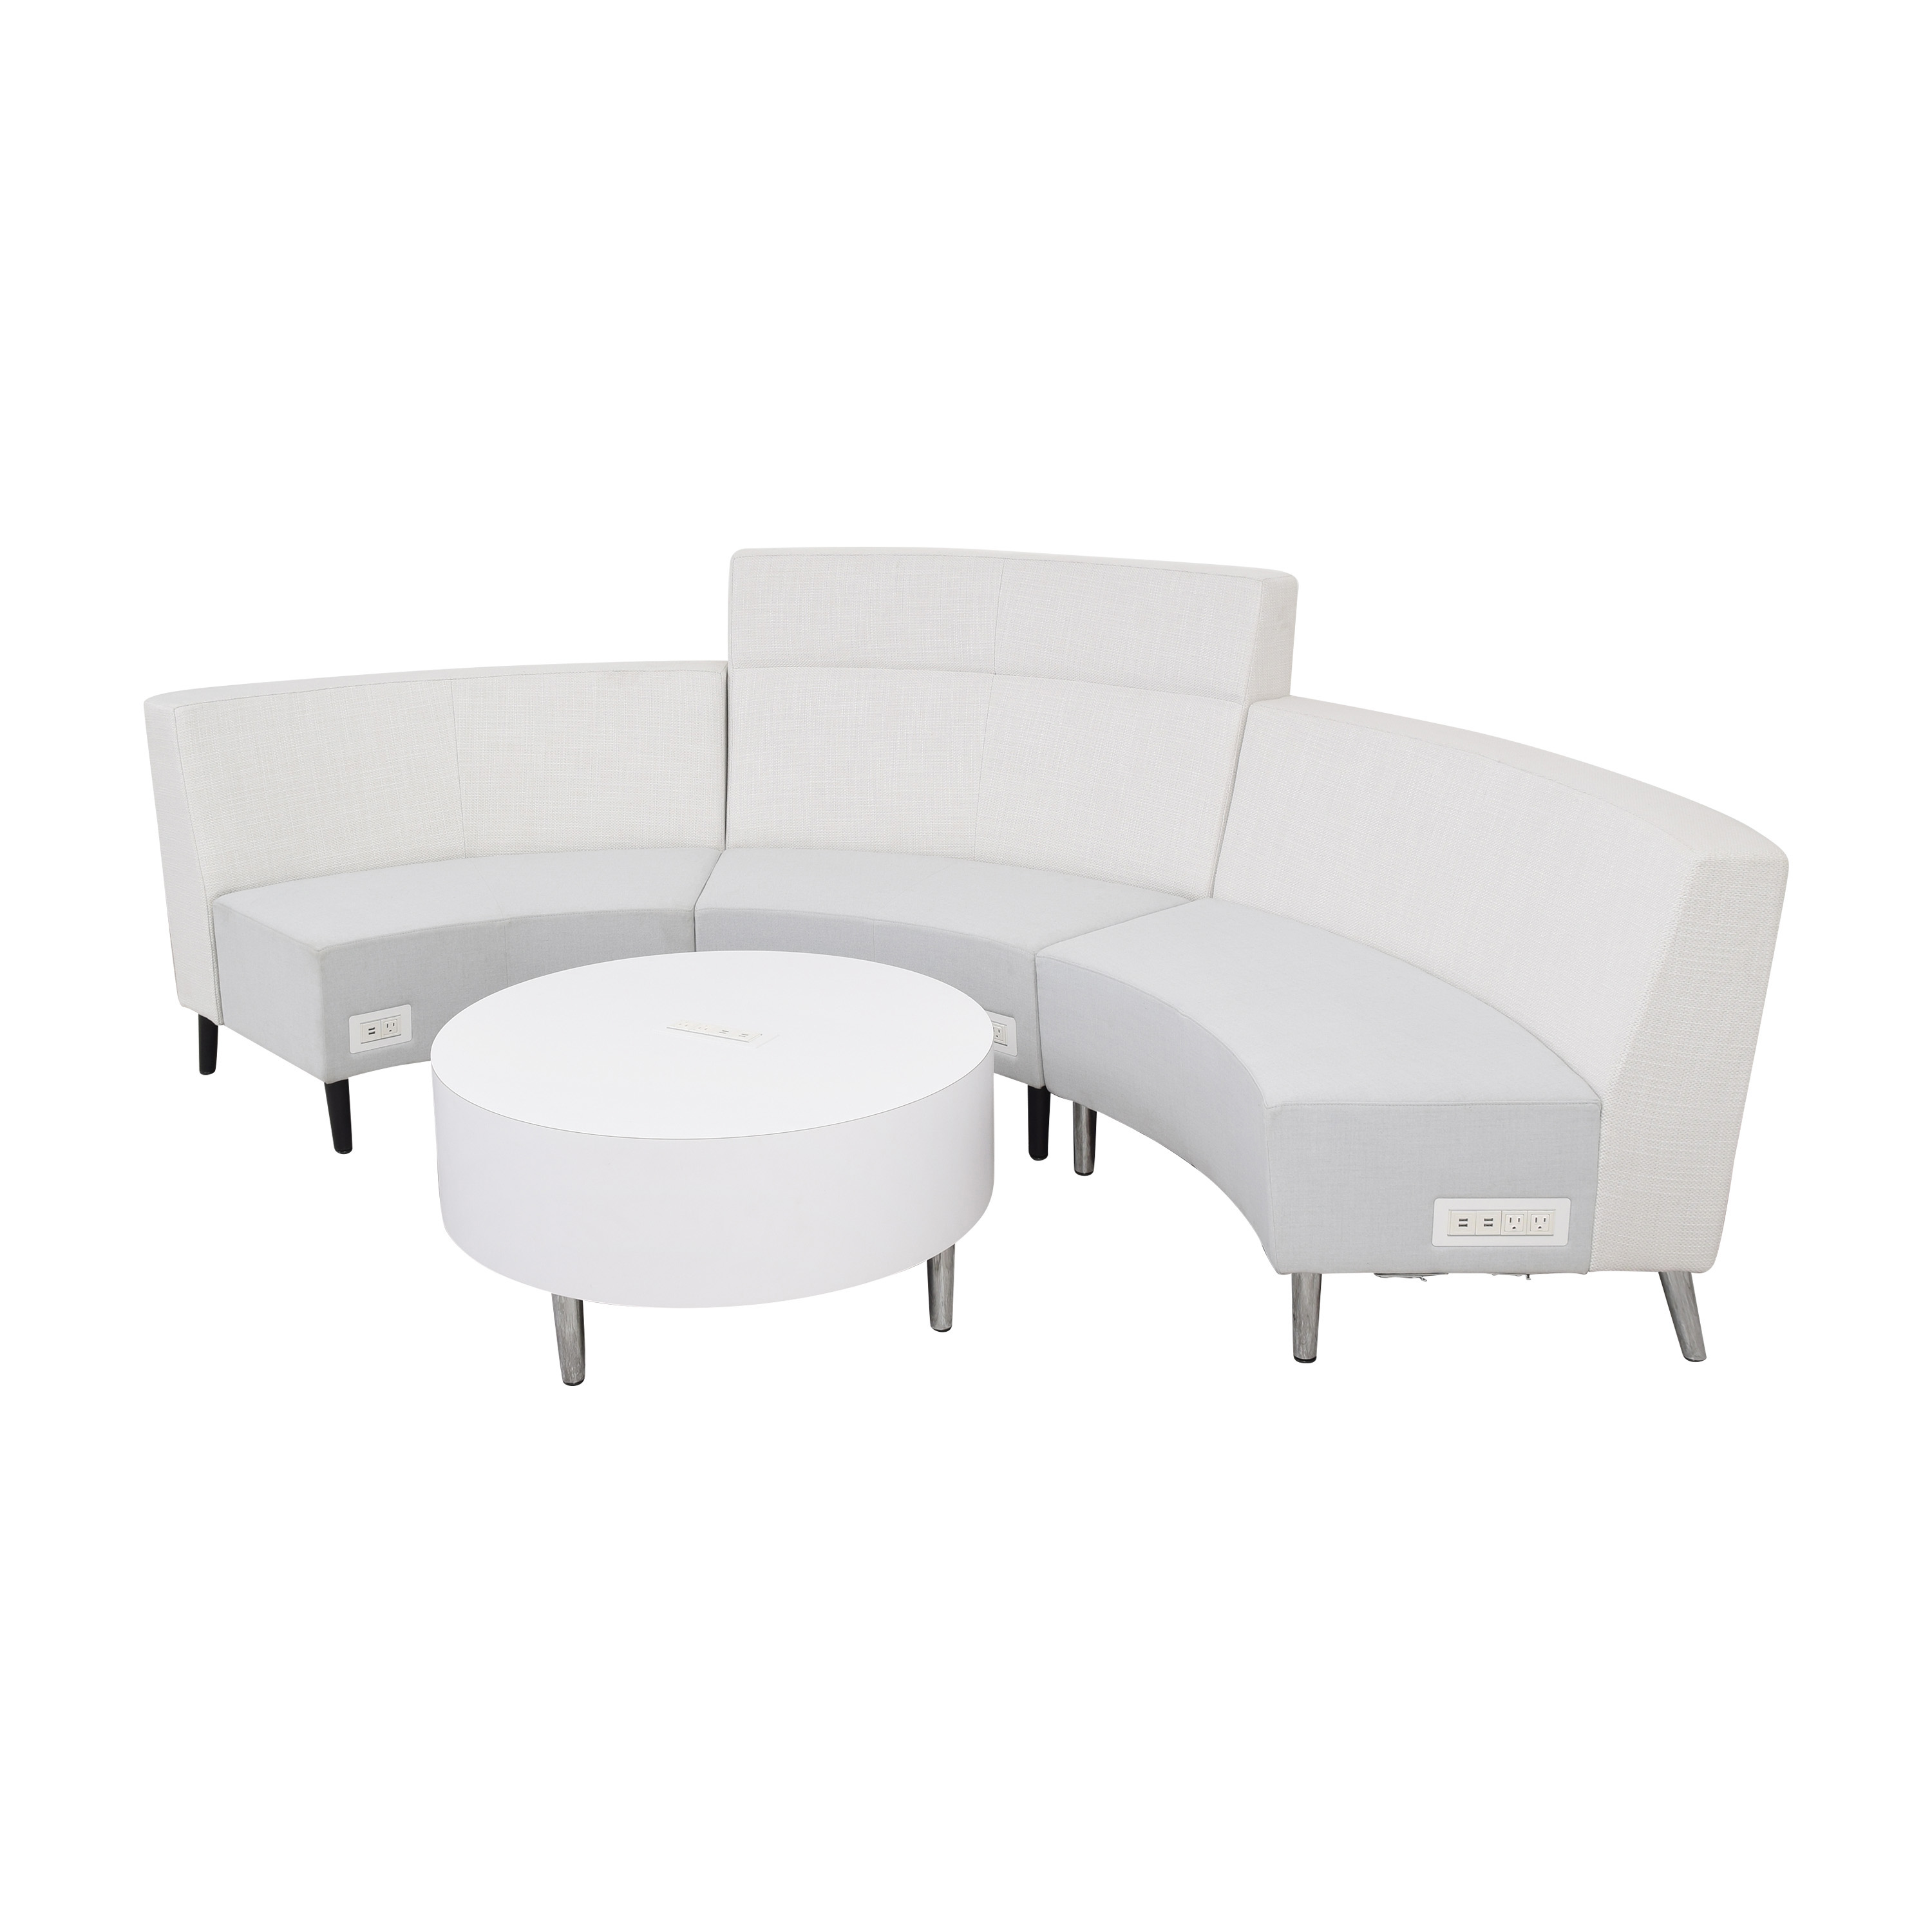 Global Furniture Group Global Furniture Group River Sectional Sofa with Coffee Table Section nj